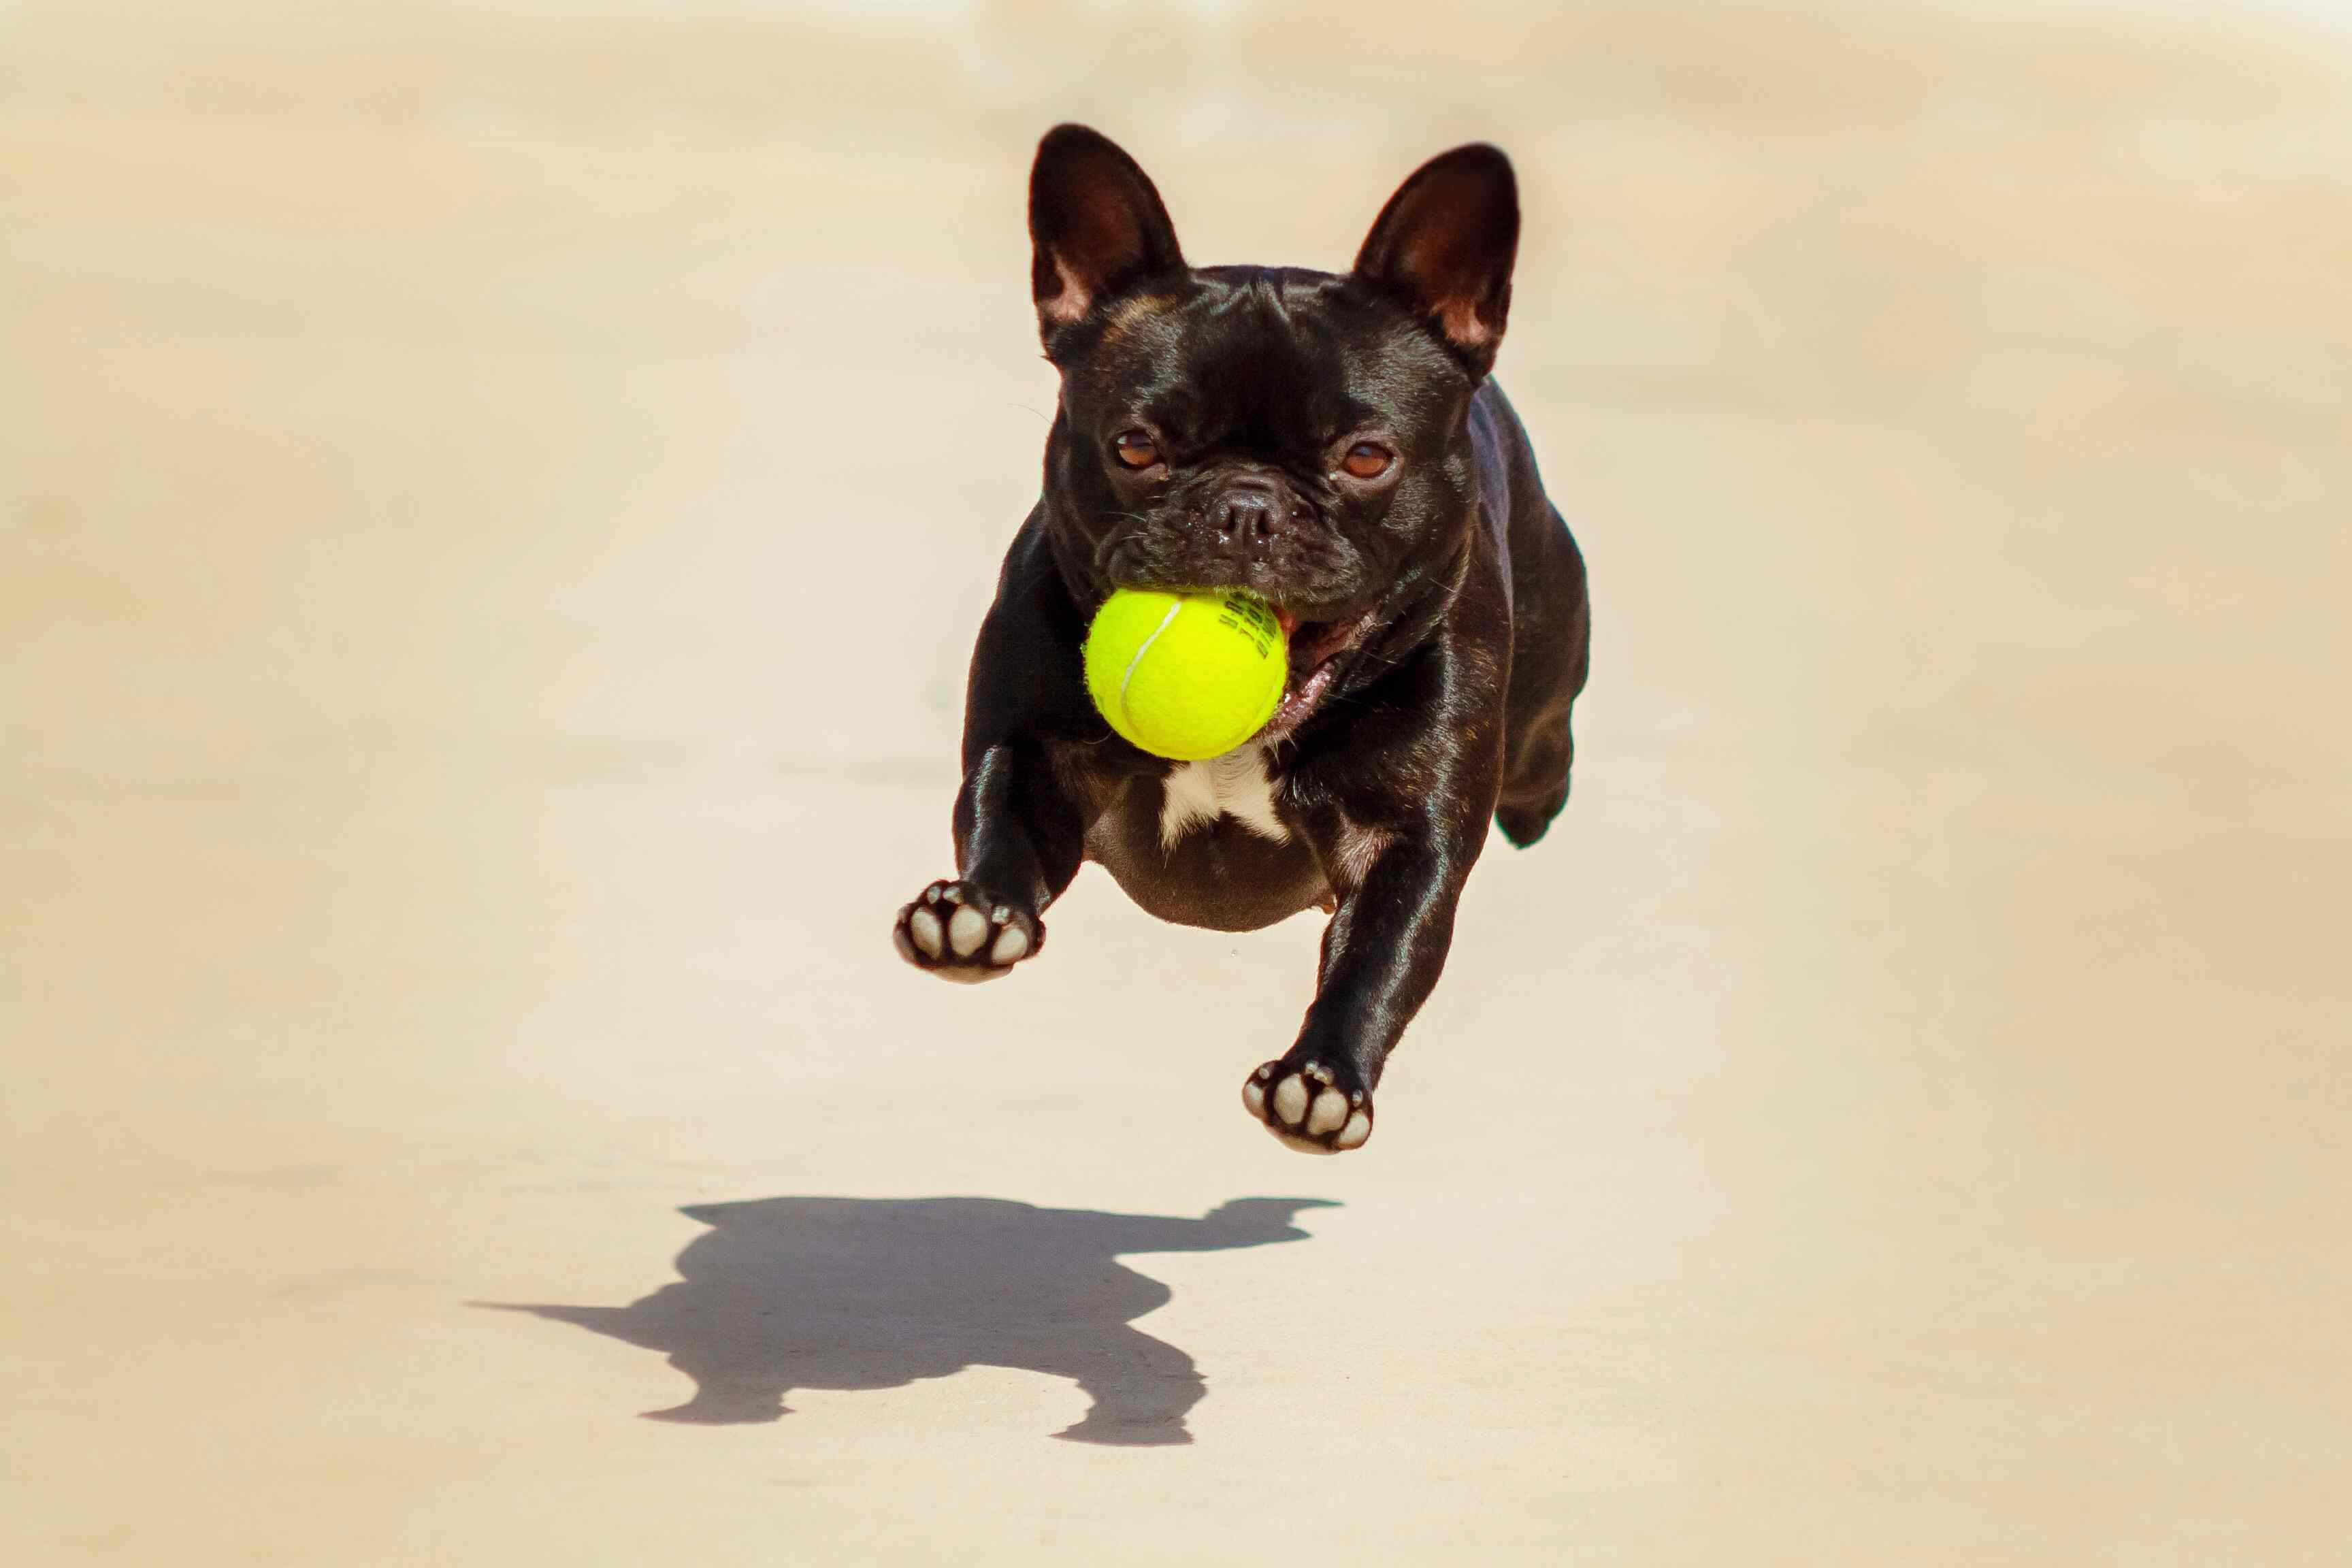 A black Frenchie running with a yellow ball in its mouth.